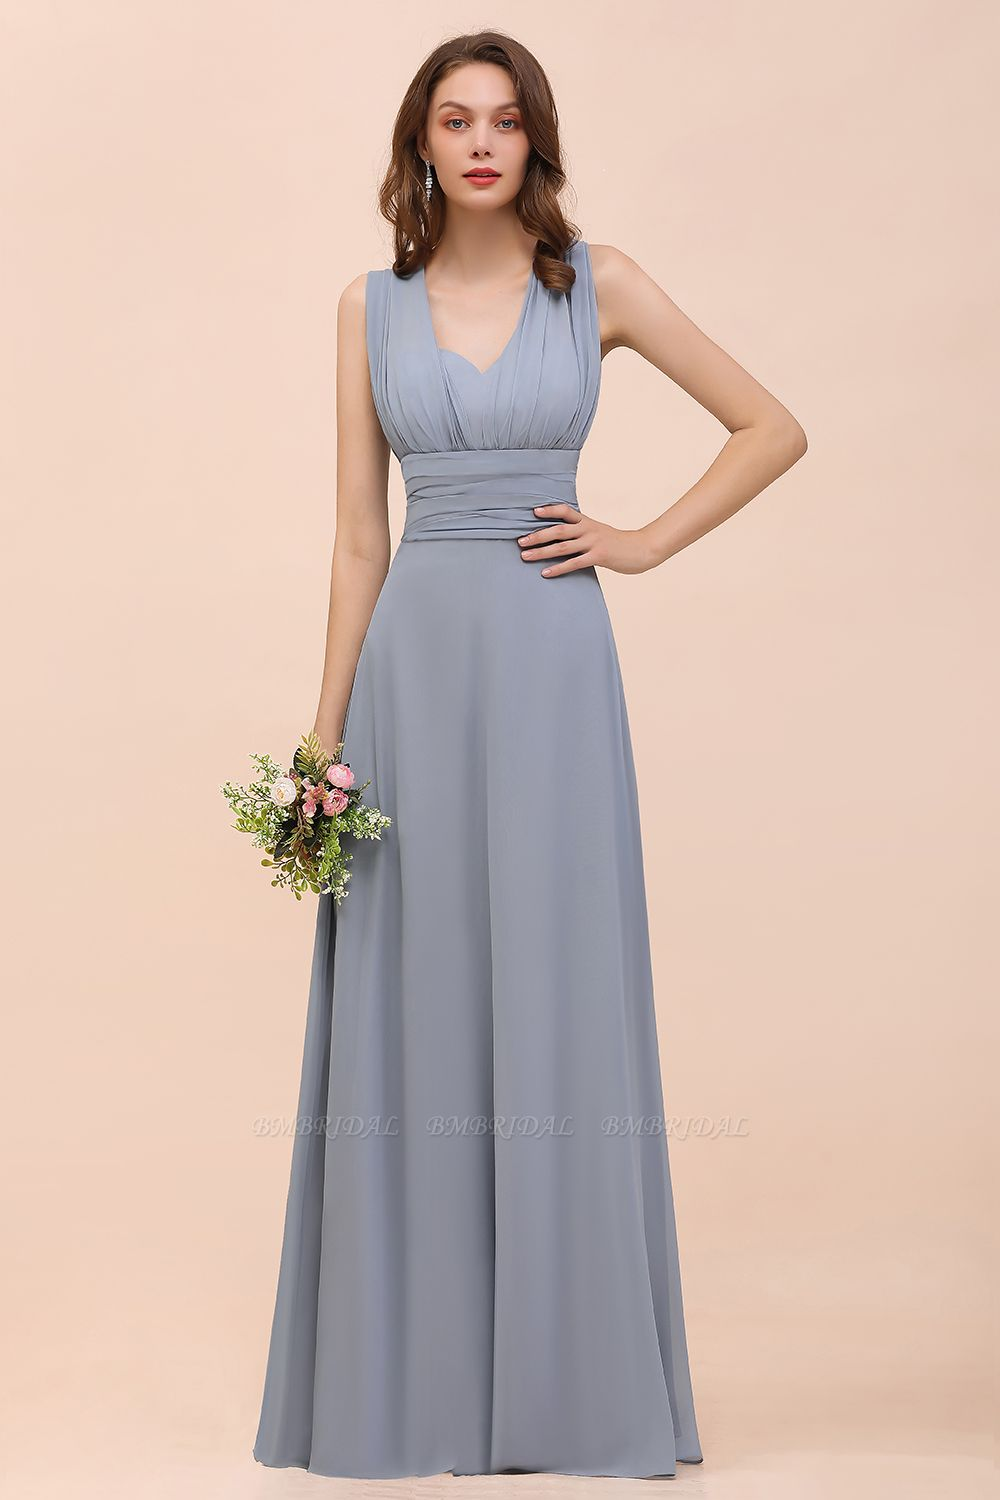 The Tips For Shopping Bridesmaid Dresses Online